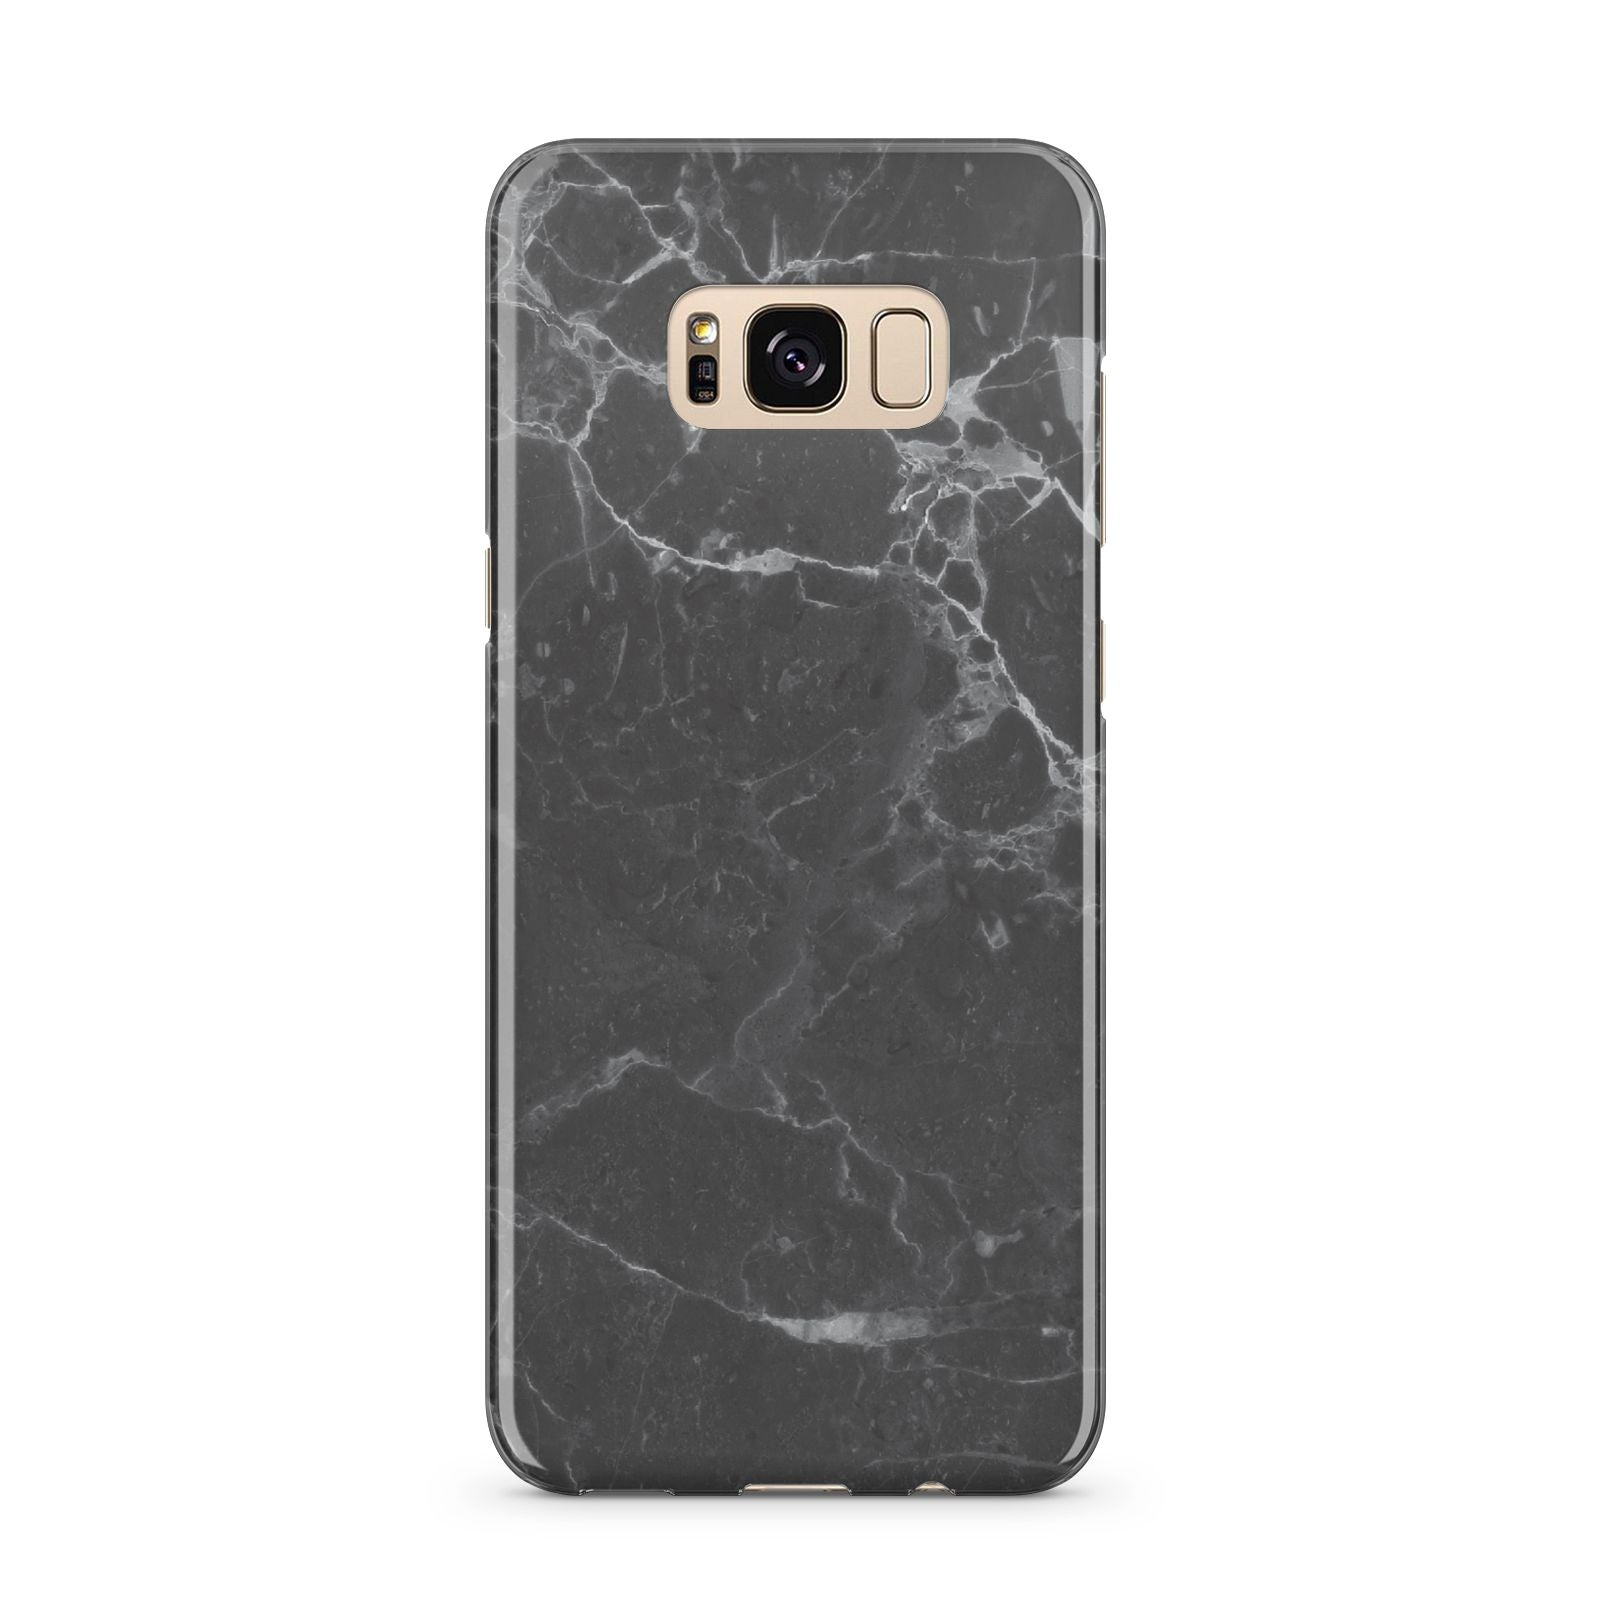 Faux Marble Effect Black Samsung Galaxy S8 Plus Case